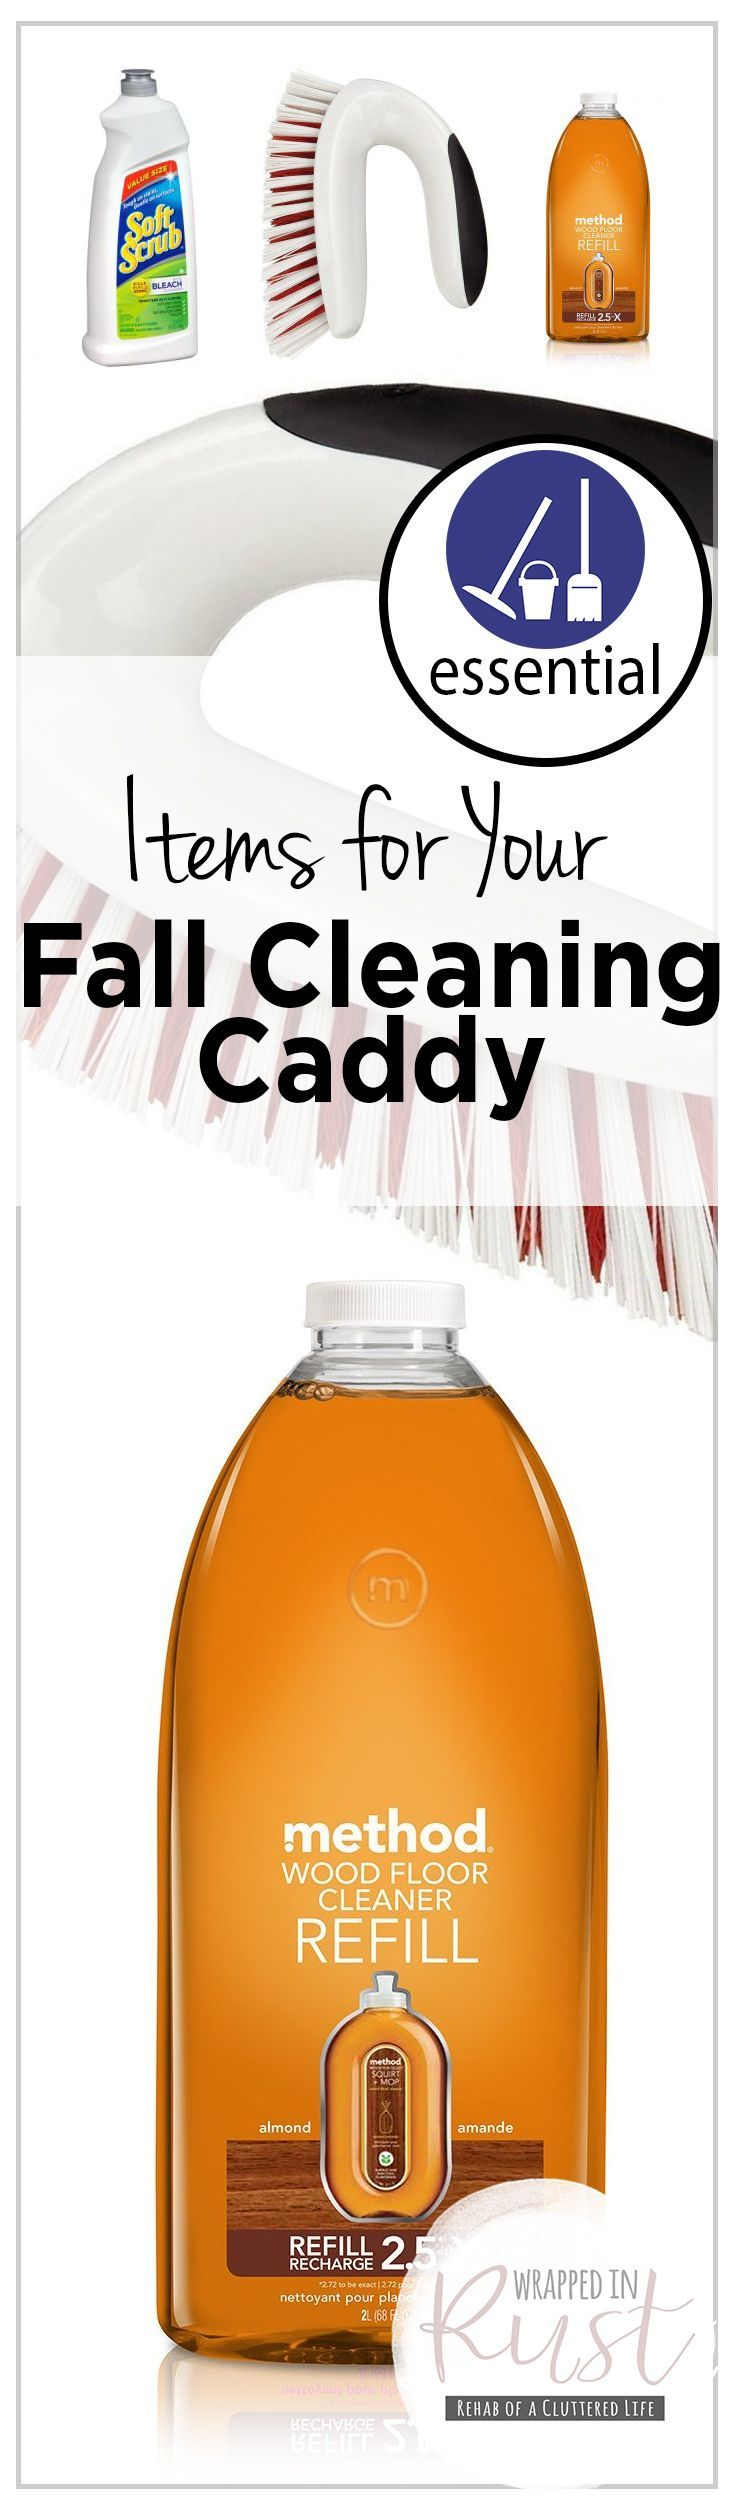 Essential Items for Your Fall Cleaning Caddy| Fall Cleaning, Fall Cleaning Tips and Tricks, Cleaning Caddy, Cleaning Caddy Tips and Tricks, Fall Cleaning, Home Cleaning, Home Cleaning Tips and Tricks, Popular Pin